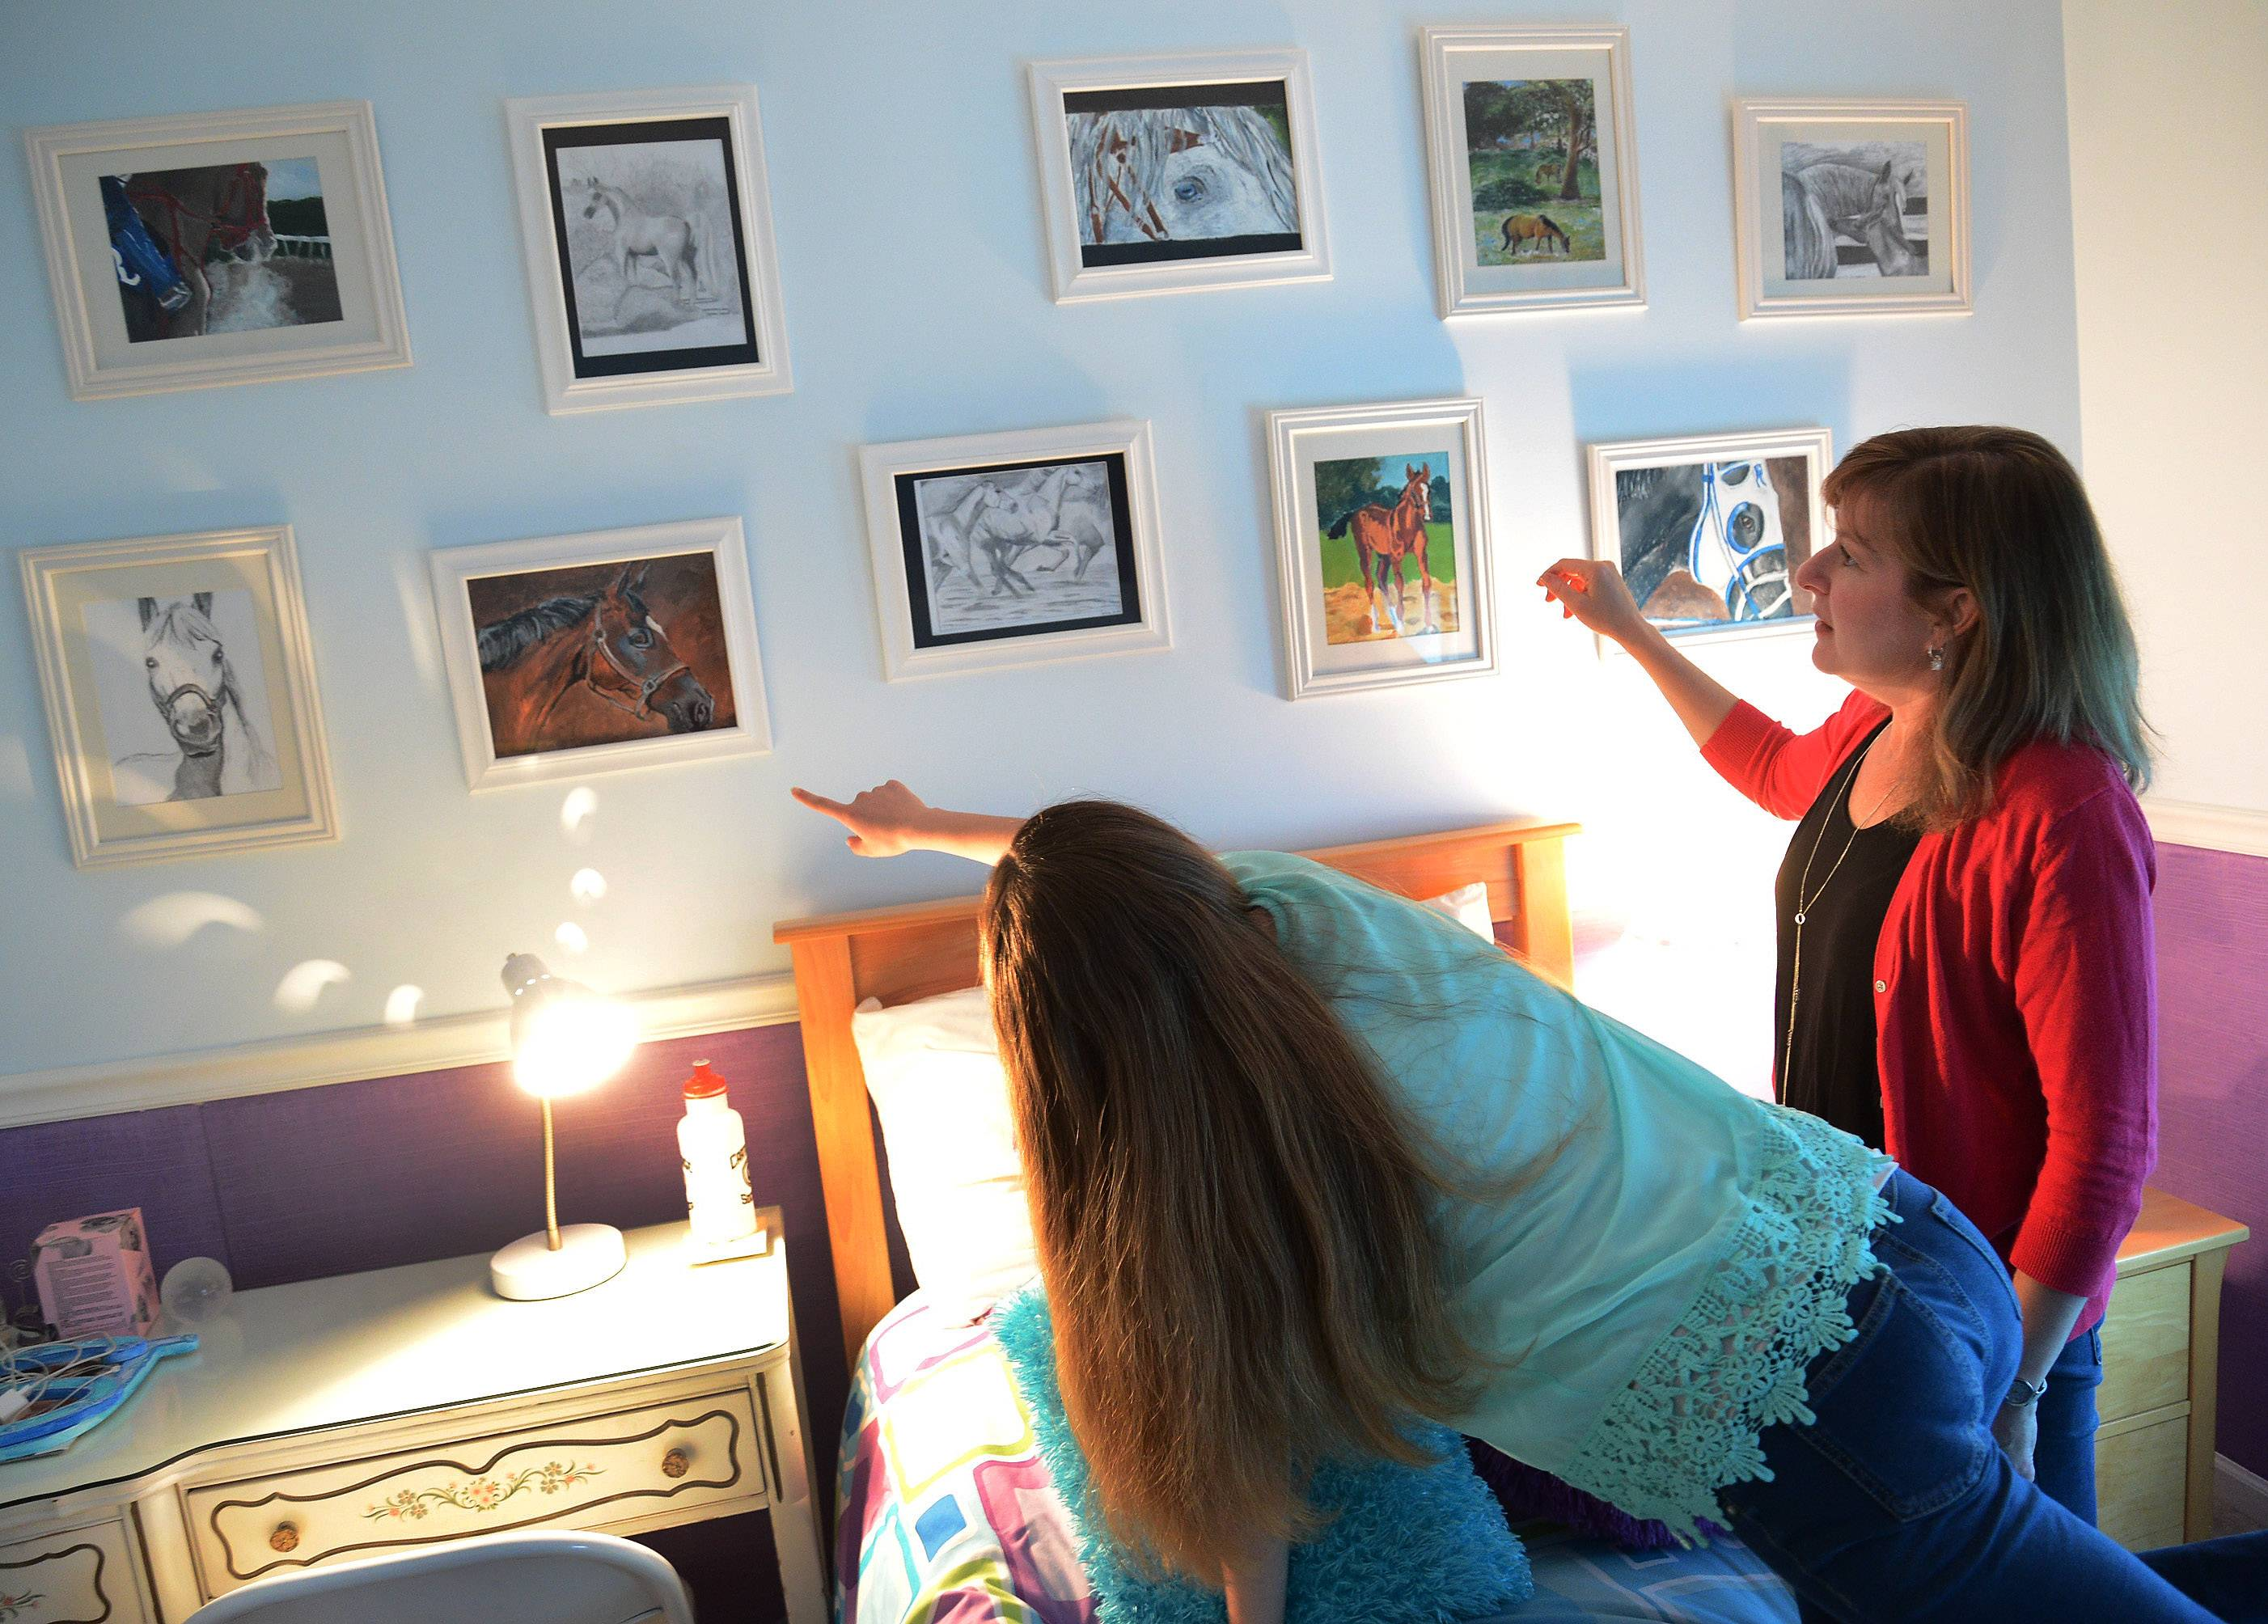 Millburn Middle School eighth-grade artist Sydney Janda and her mom, Stacy, show visitors some of her early work.